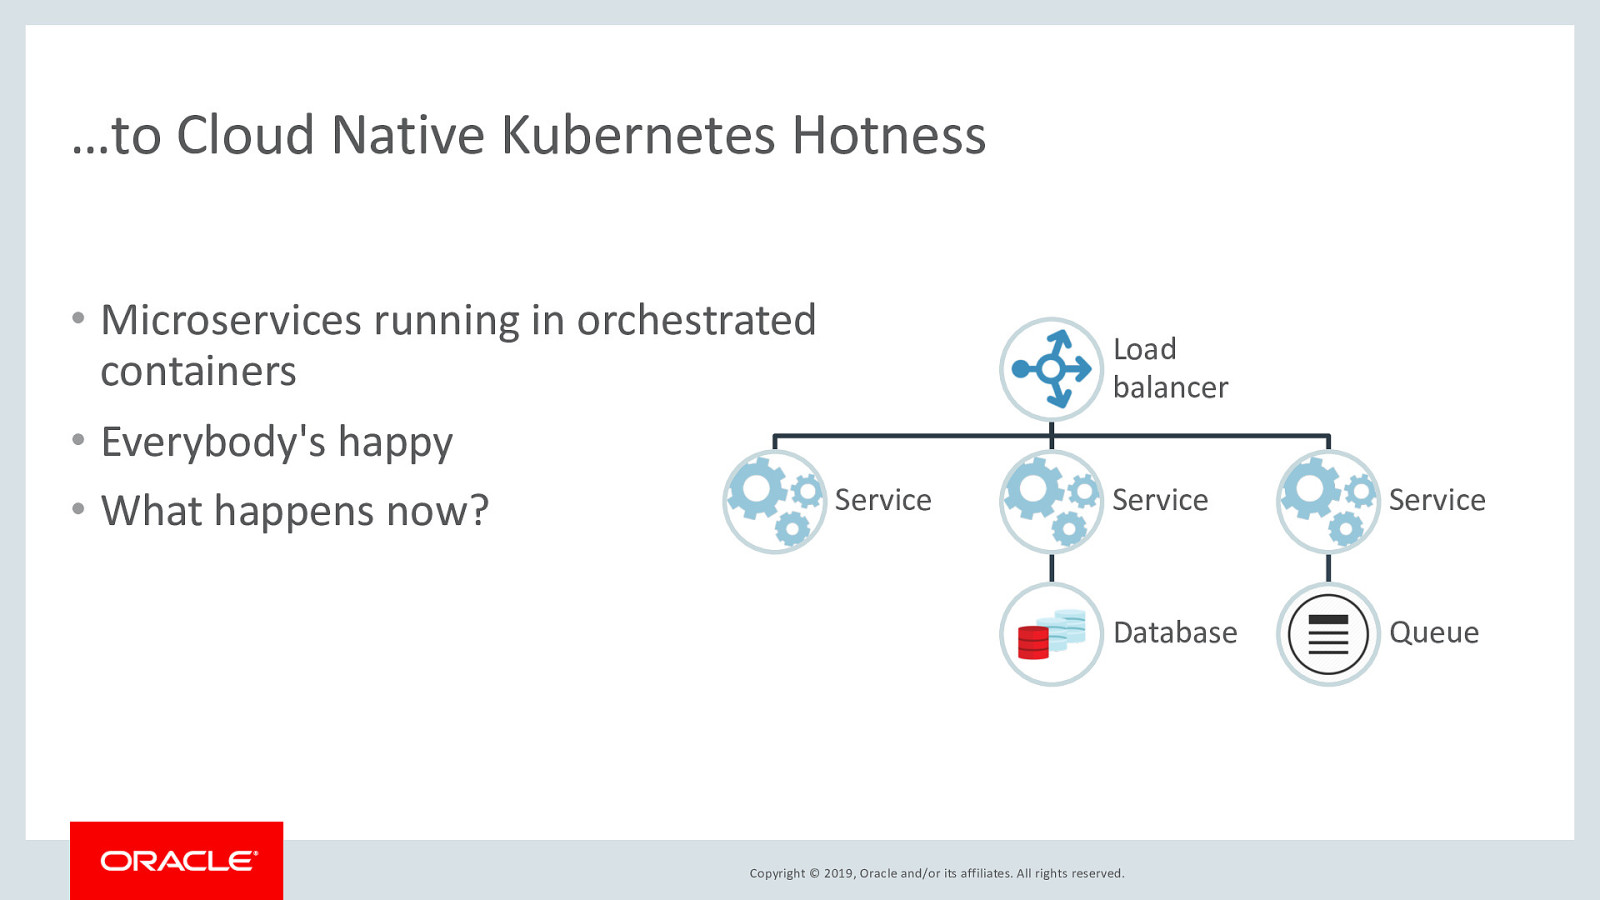 Paths to Cloud Native